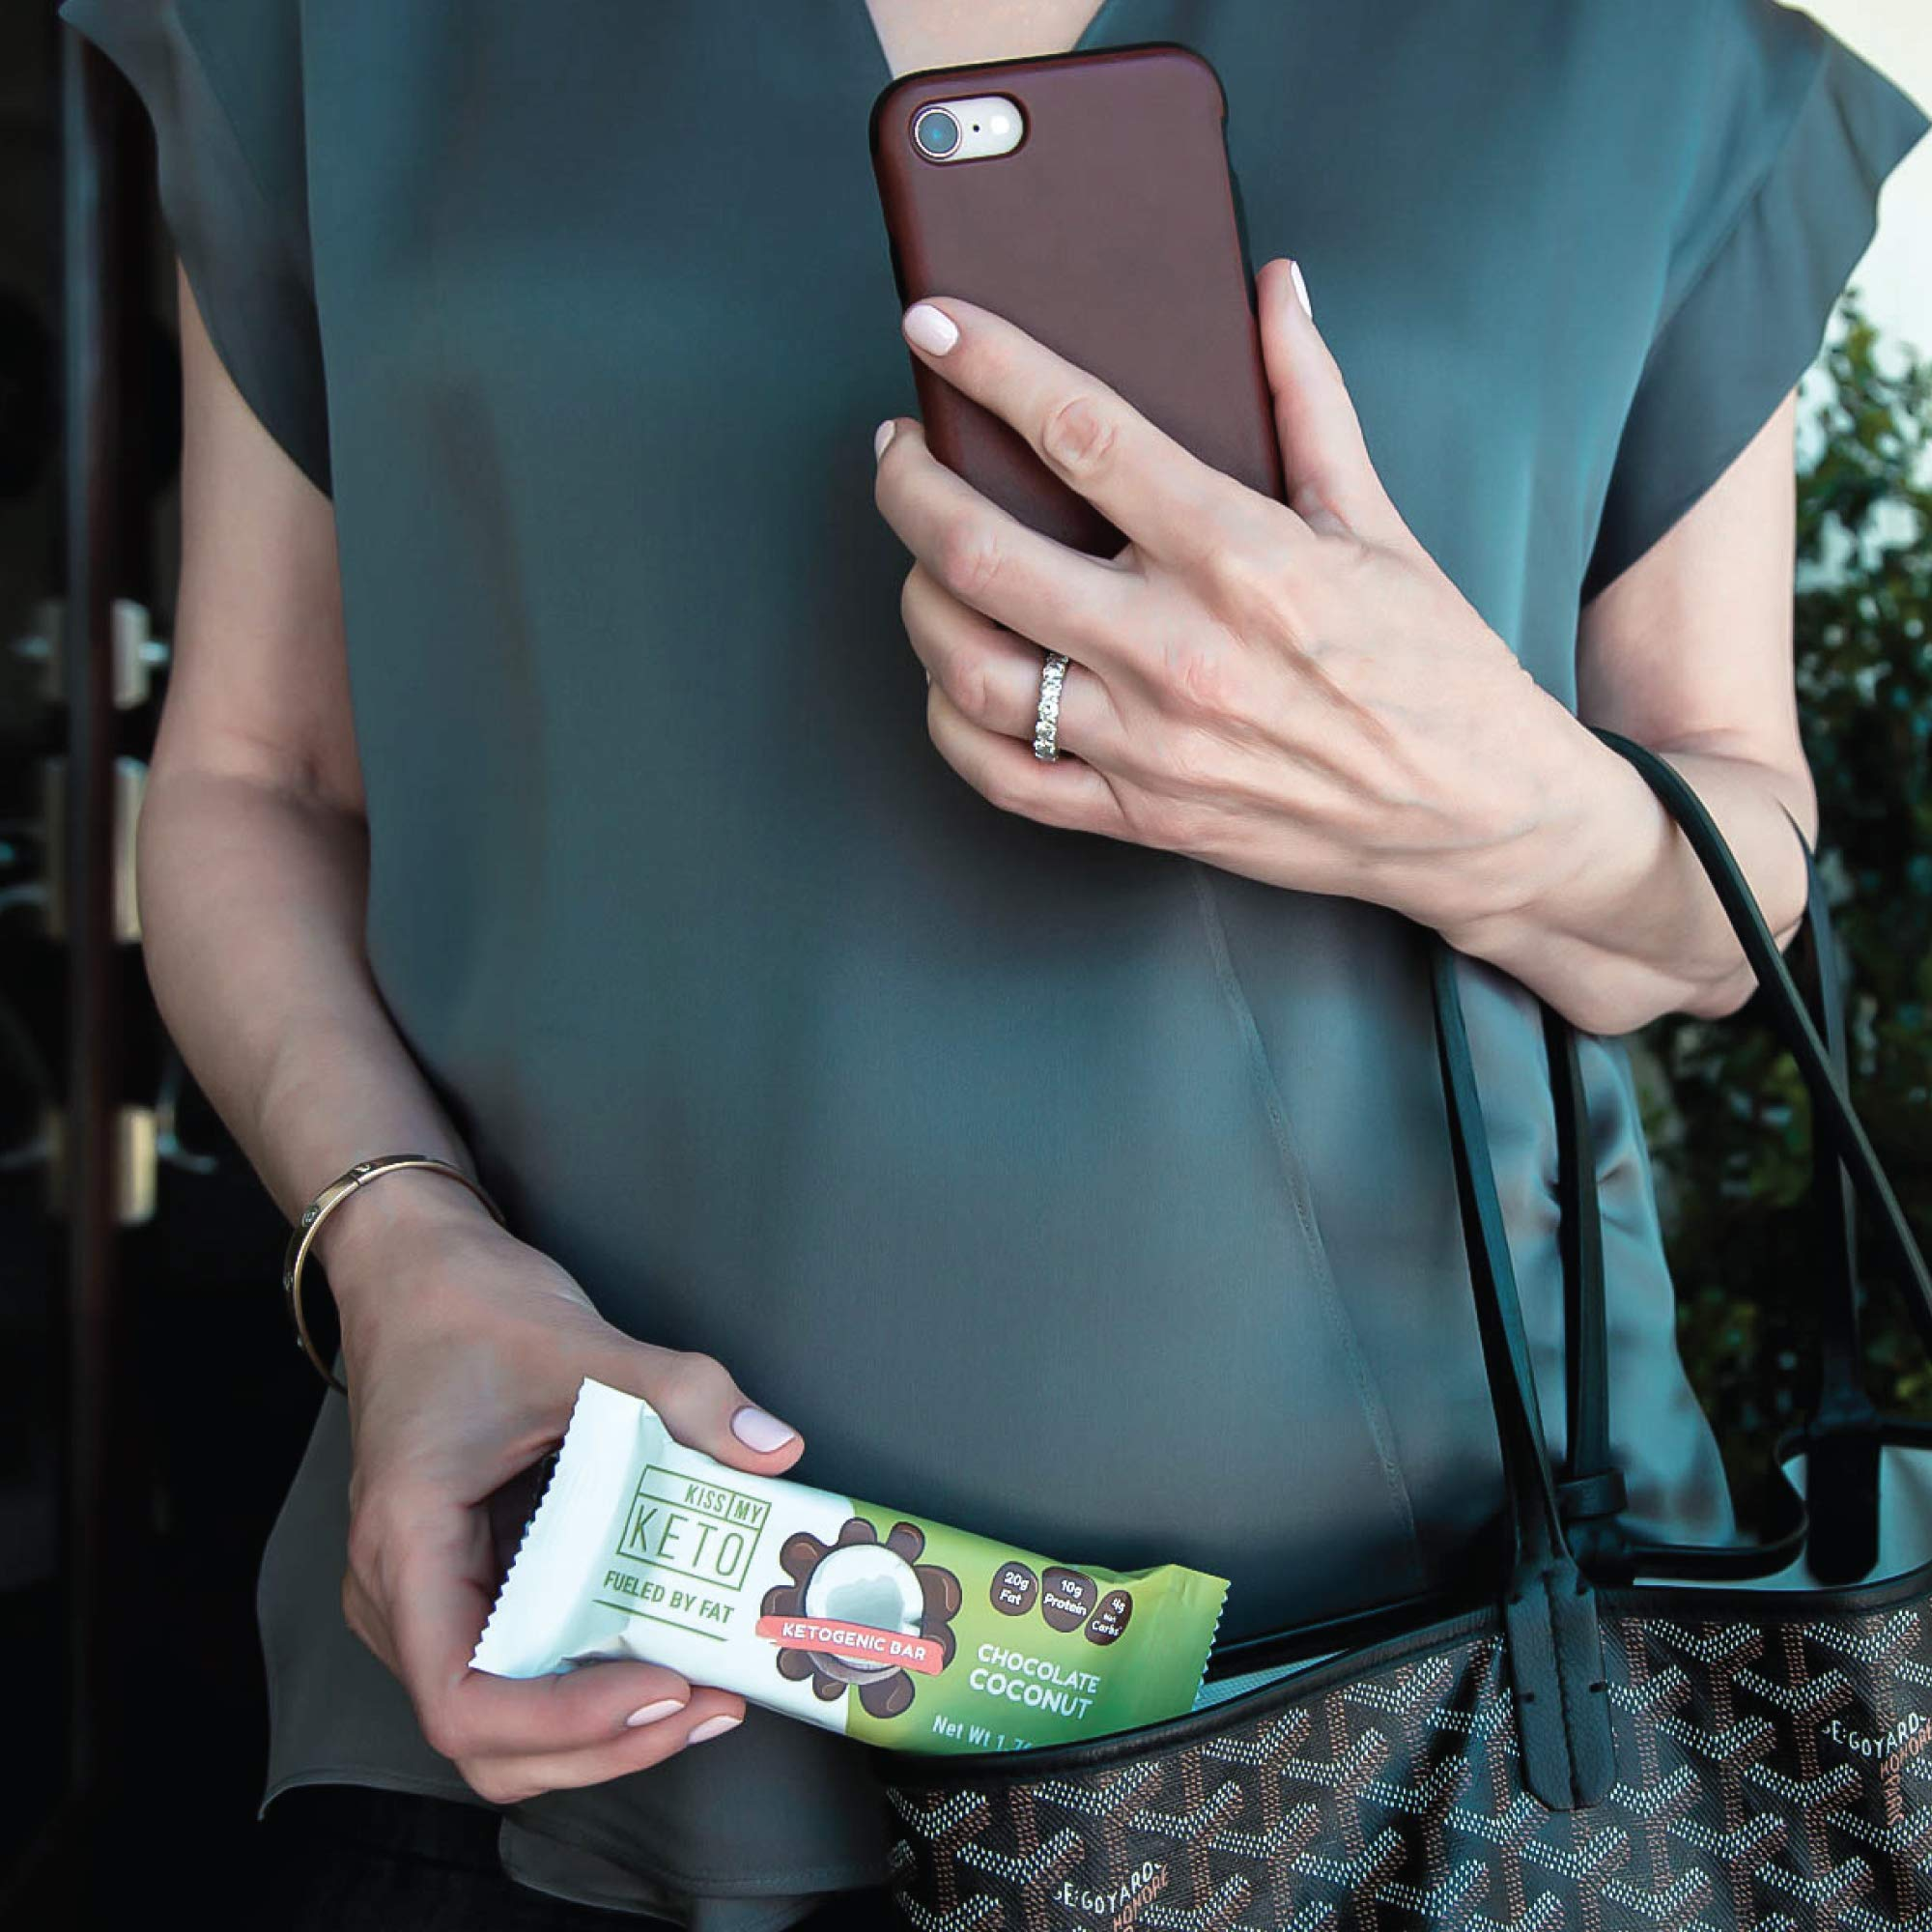 Kiss My Keto Snacks Keto Bars - Keto Chocolate Coconut (3 Pack, 36 Bars), Nutritional Keto Food Bars, Paleo, Low Carb/Glycemic Keto Friendly Foods, All Natural On-The-Go Snacks, 4g Net Carbs by Kiss My Keto (Image #7)